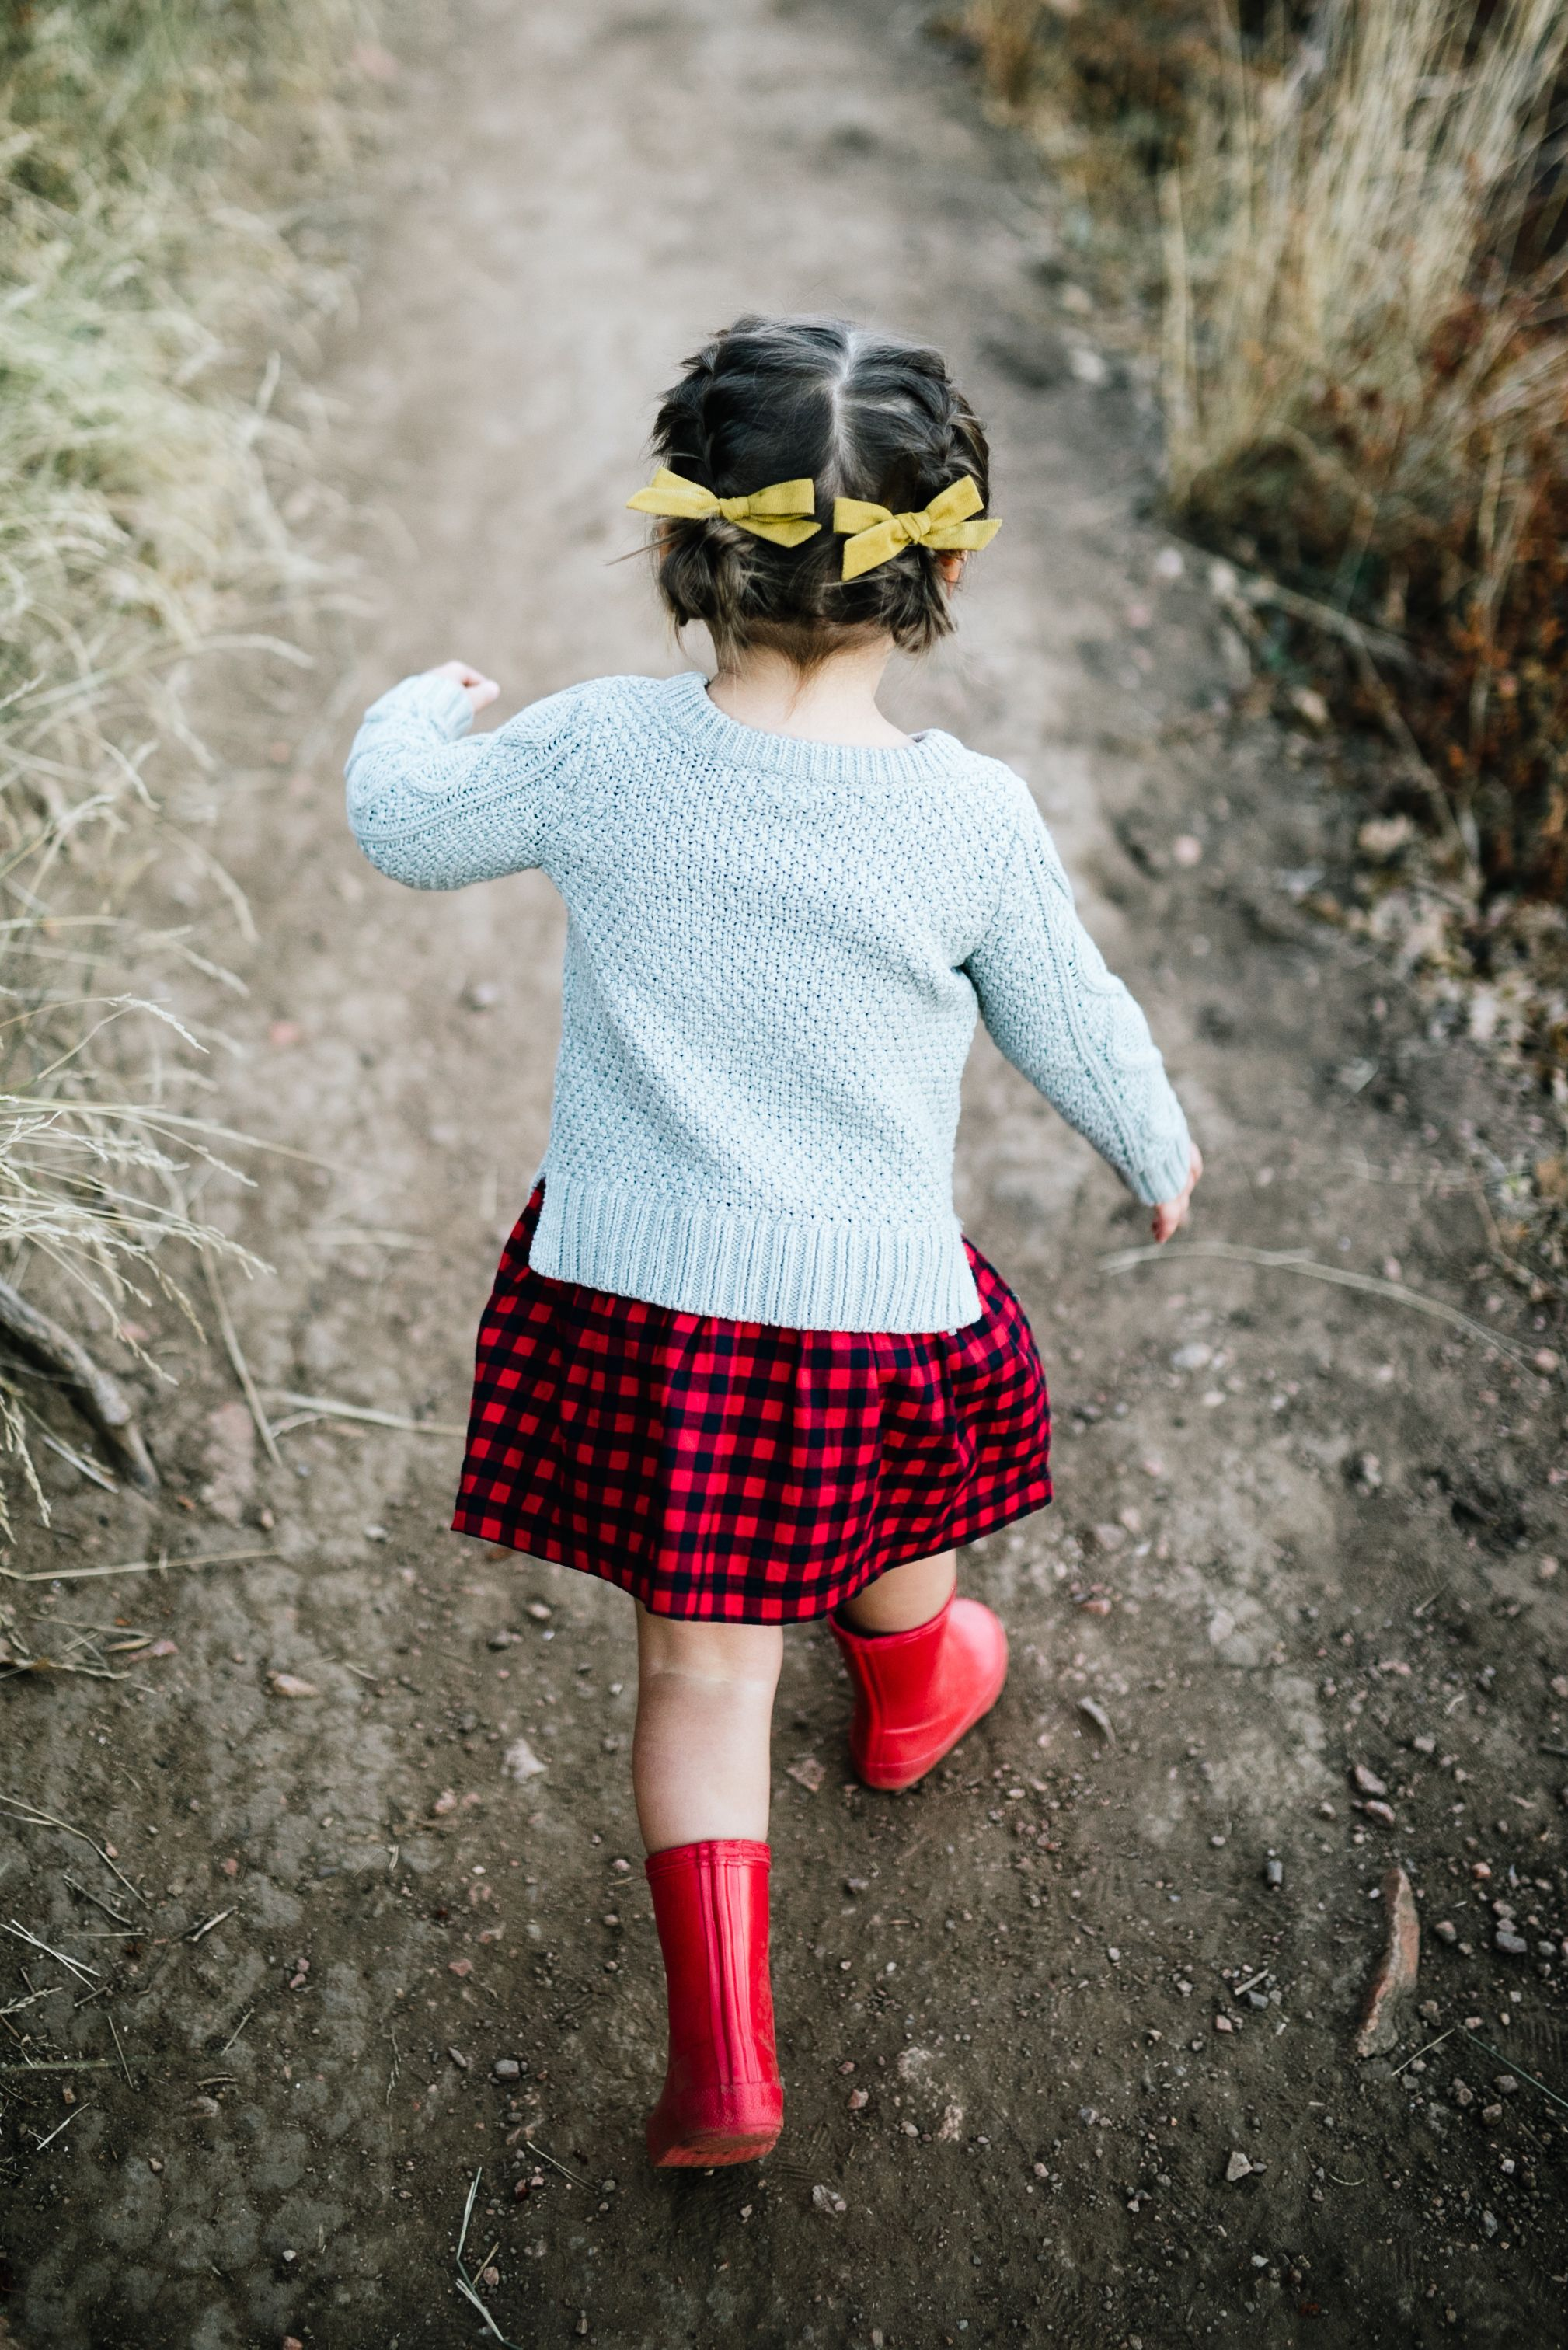 Winter Wheat Pigtail Set By Free Babes Handmade X Soor Ploom The Perfect Hair Bows To Compliment Your Little Girls Adventurous Style